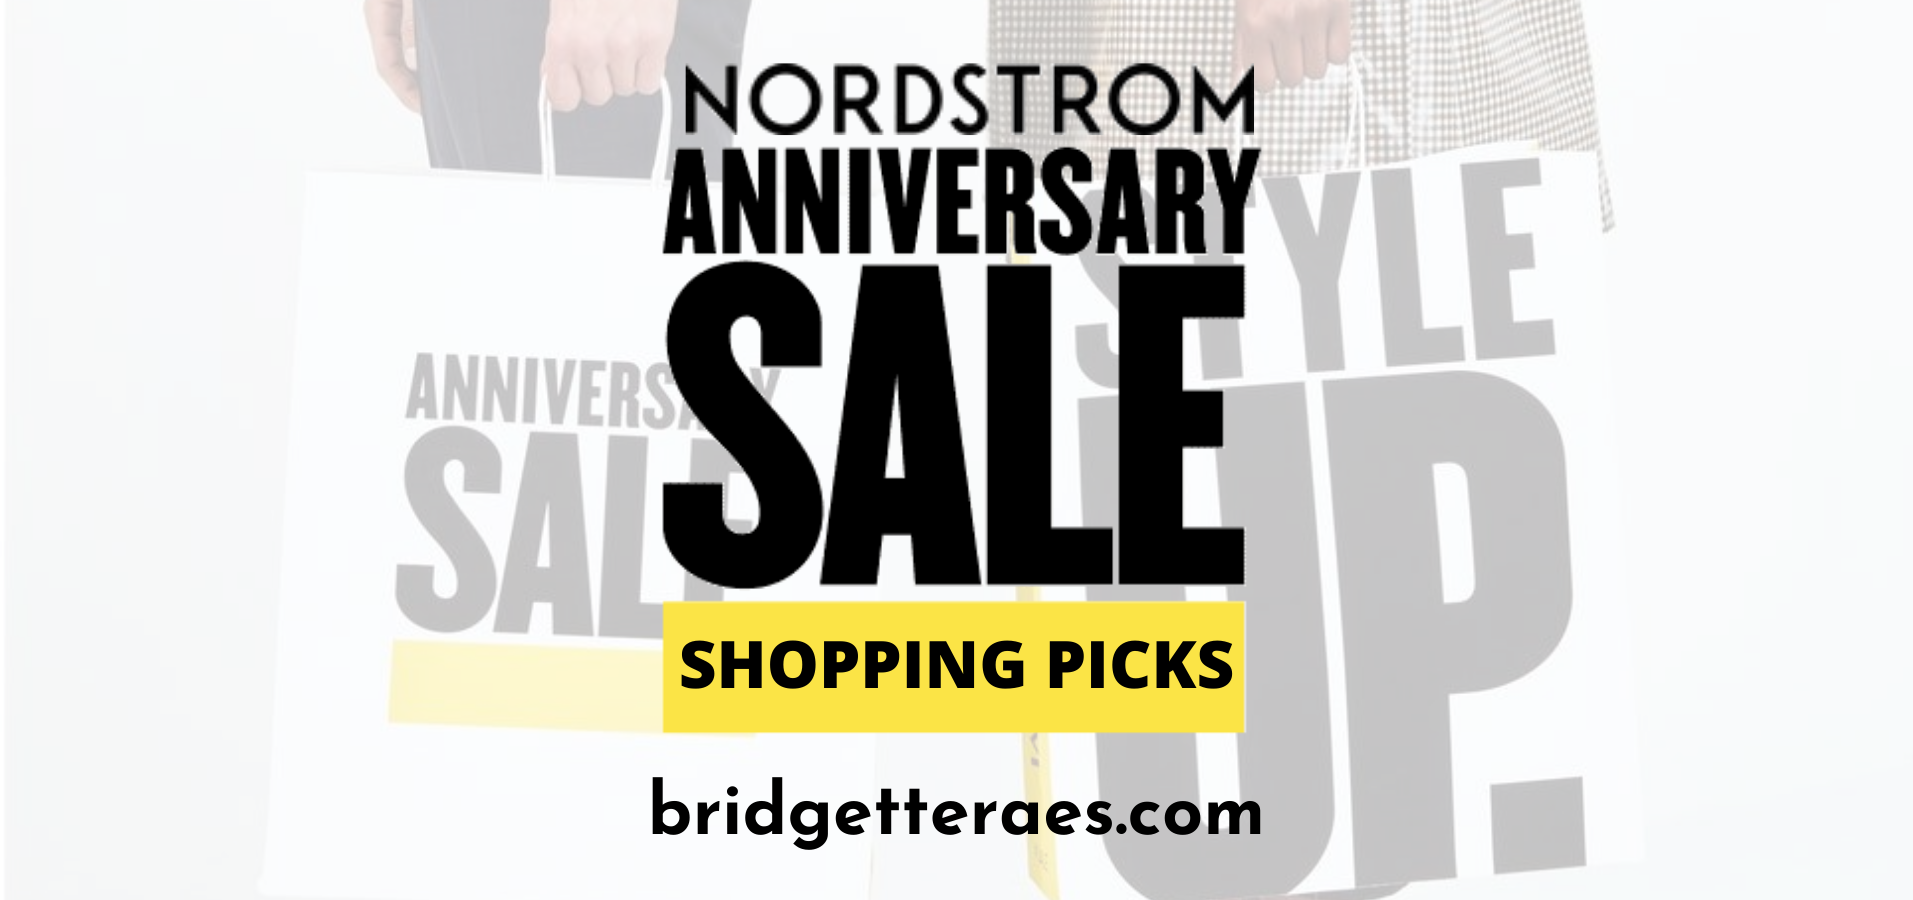 Nordstrom Anniversary Sale 2020 Shopping Picks